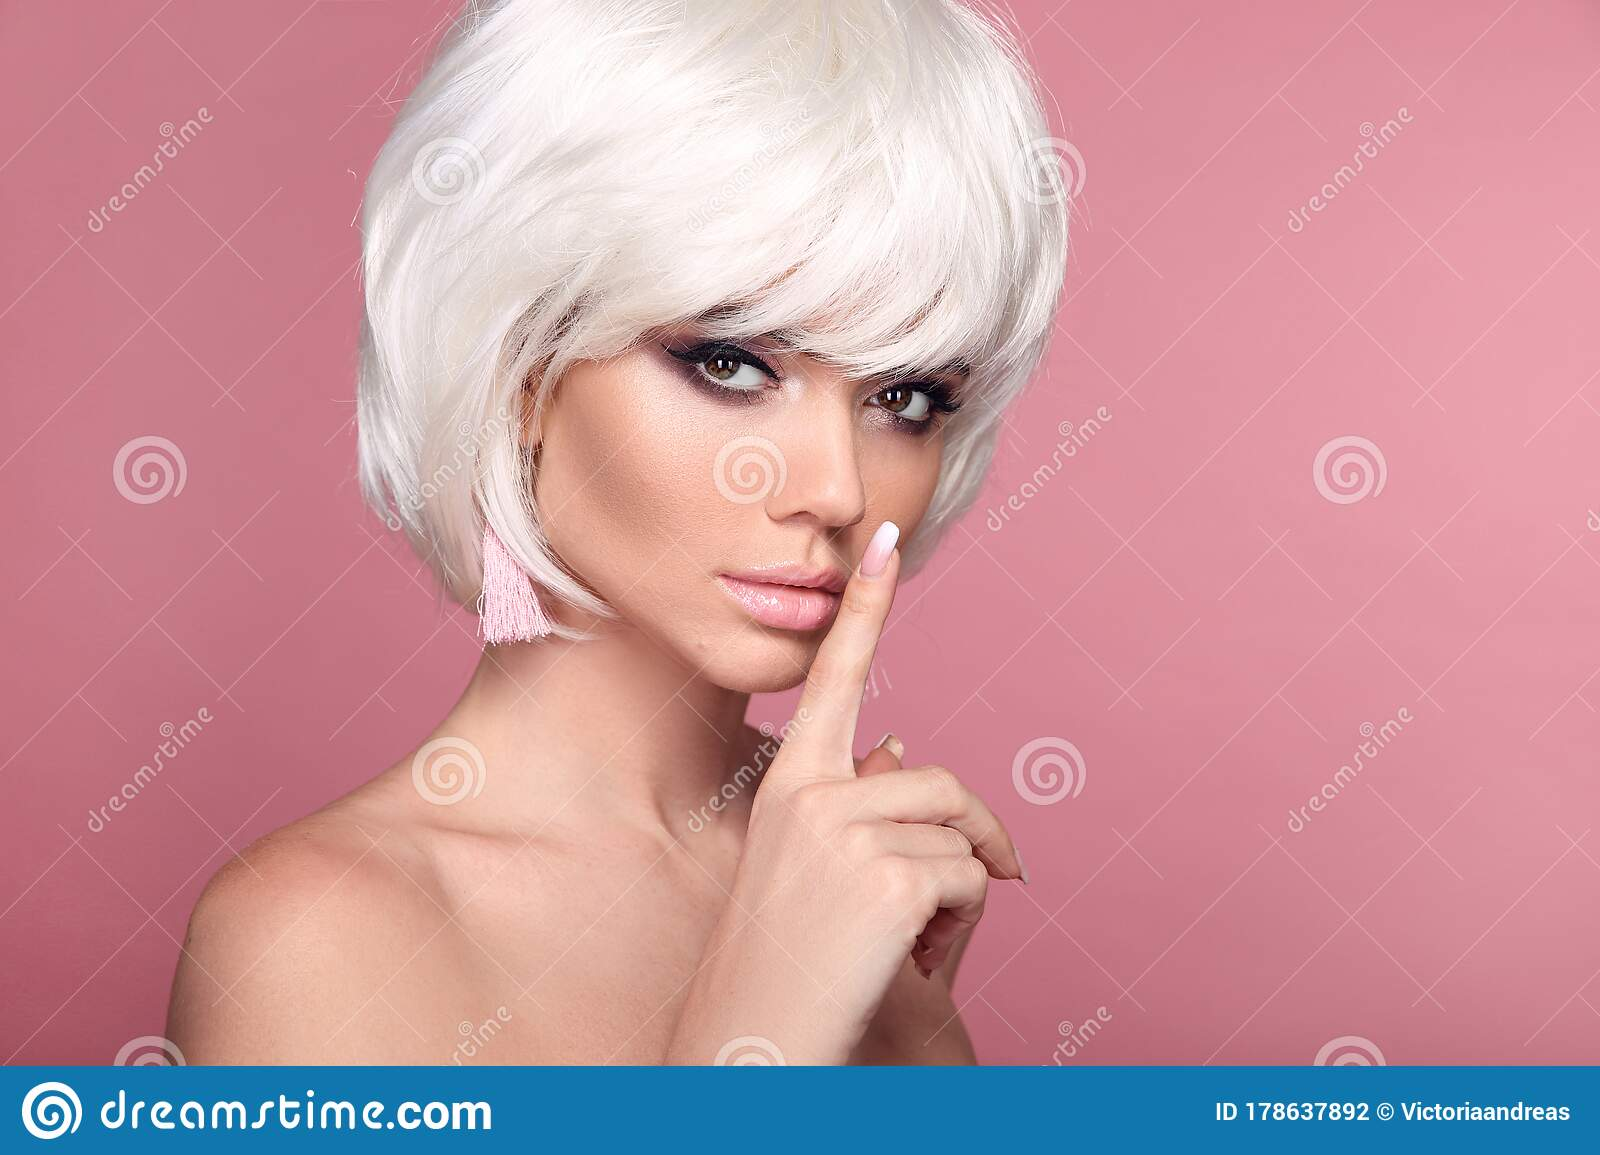 422 230 Blonde Model Photos Free Royalty Free Stock Photos From Dreamstime